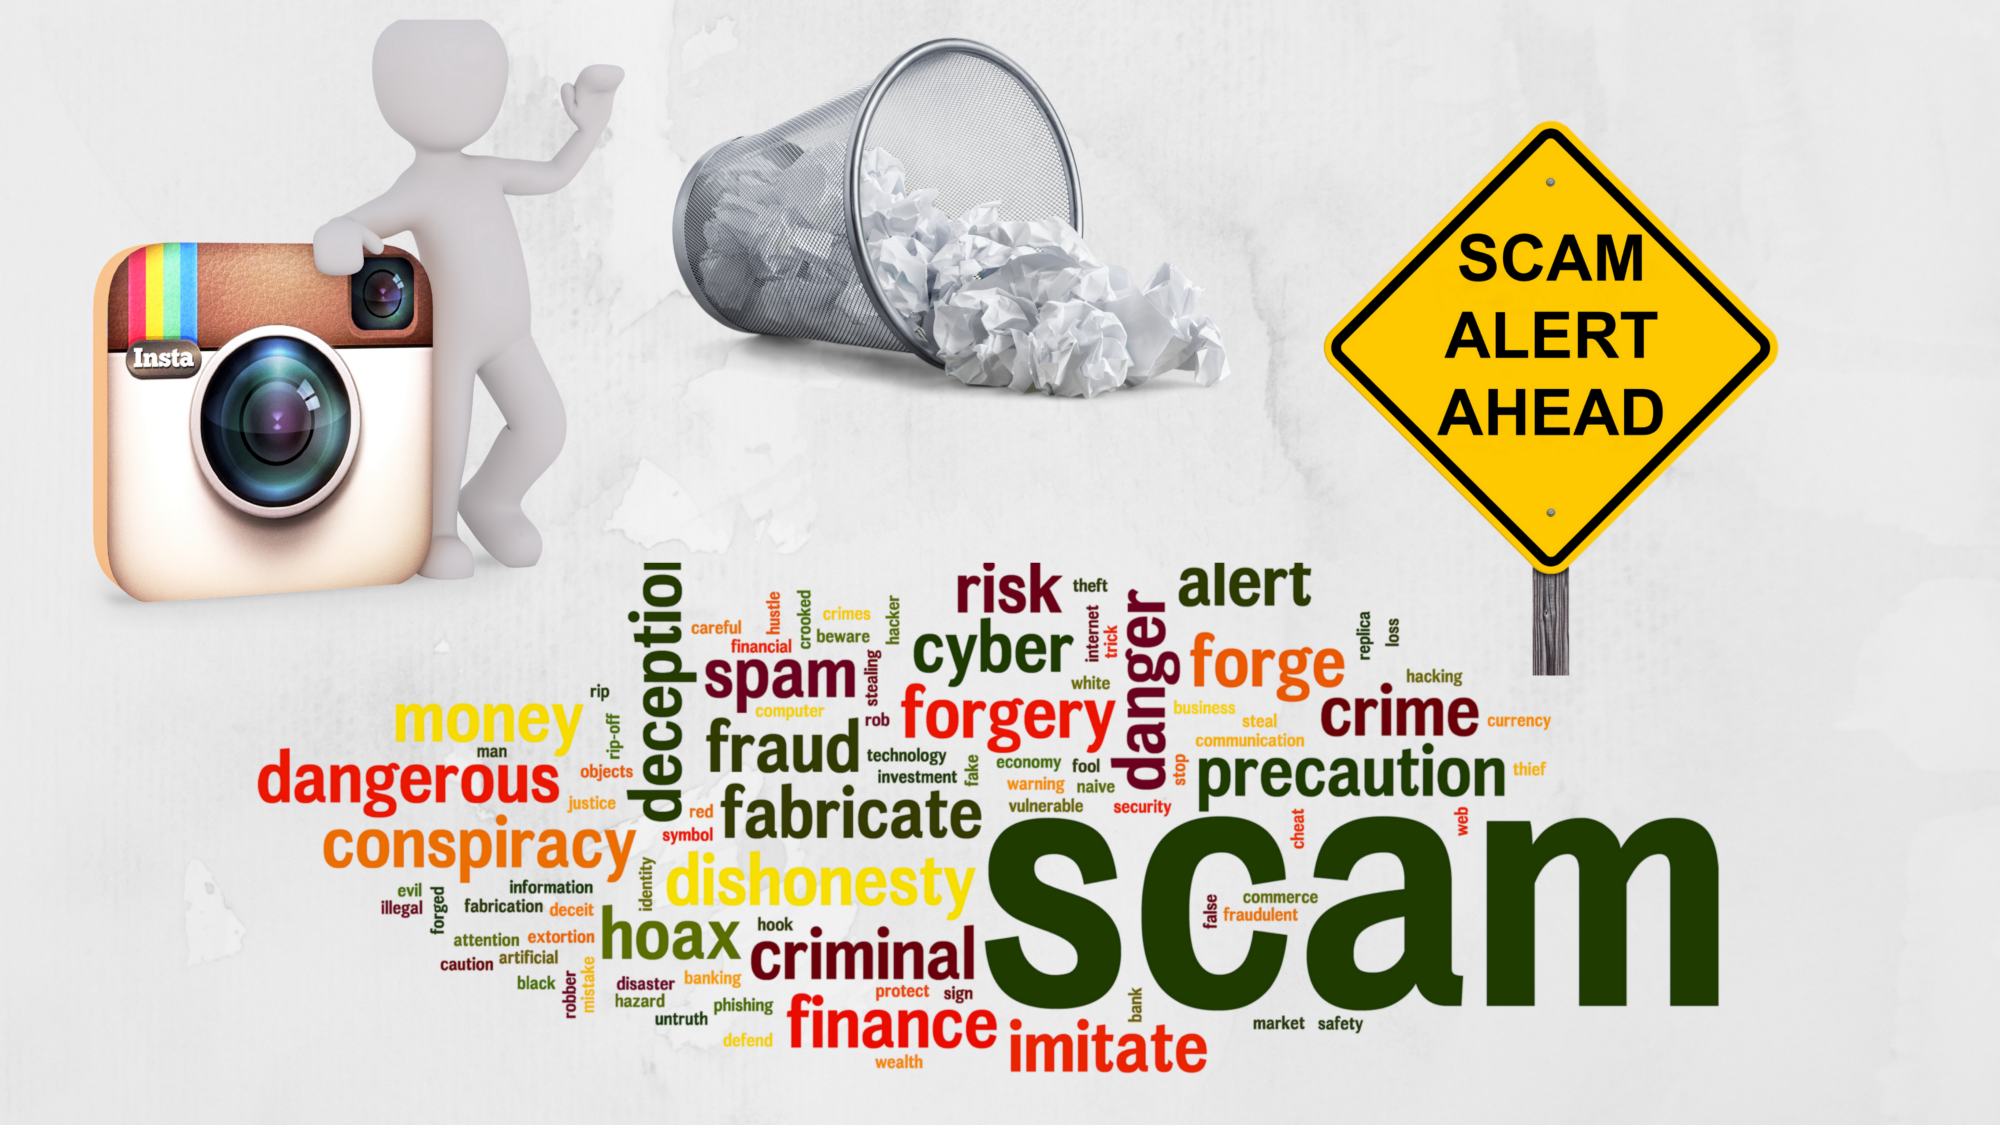 A background image full of scam and it's related keywords